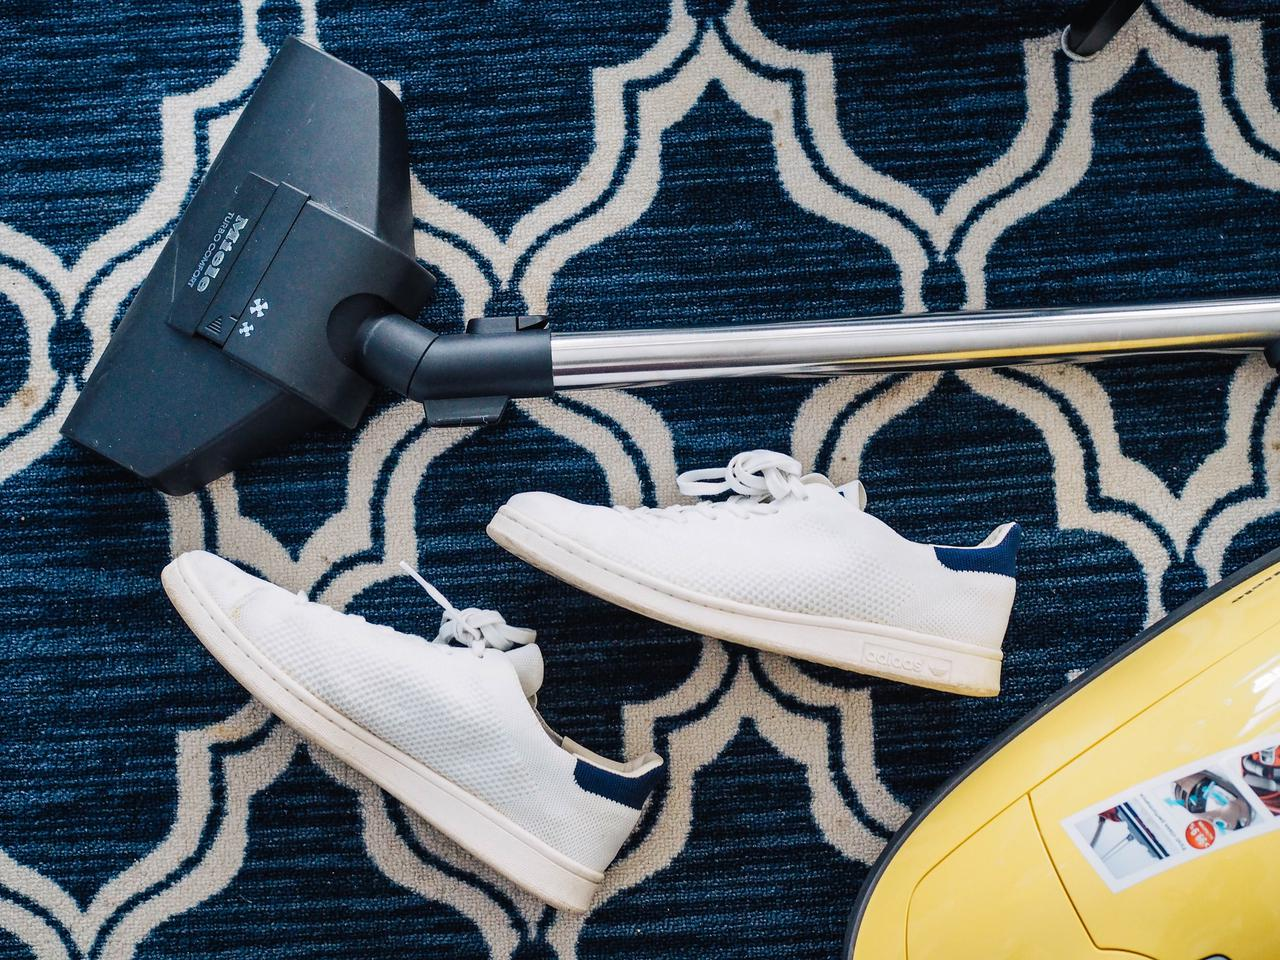 My carpet is stained - now what? Expert advice from a carpet cleaning company in PA